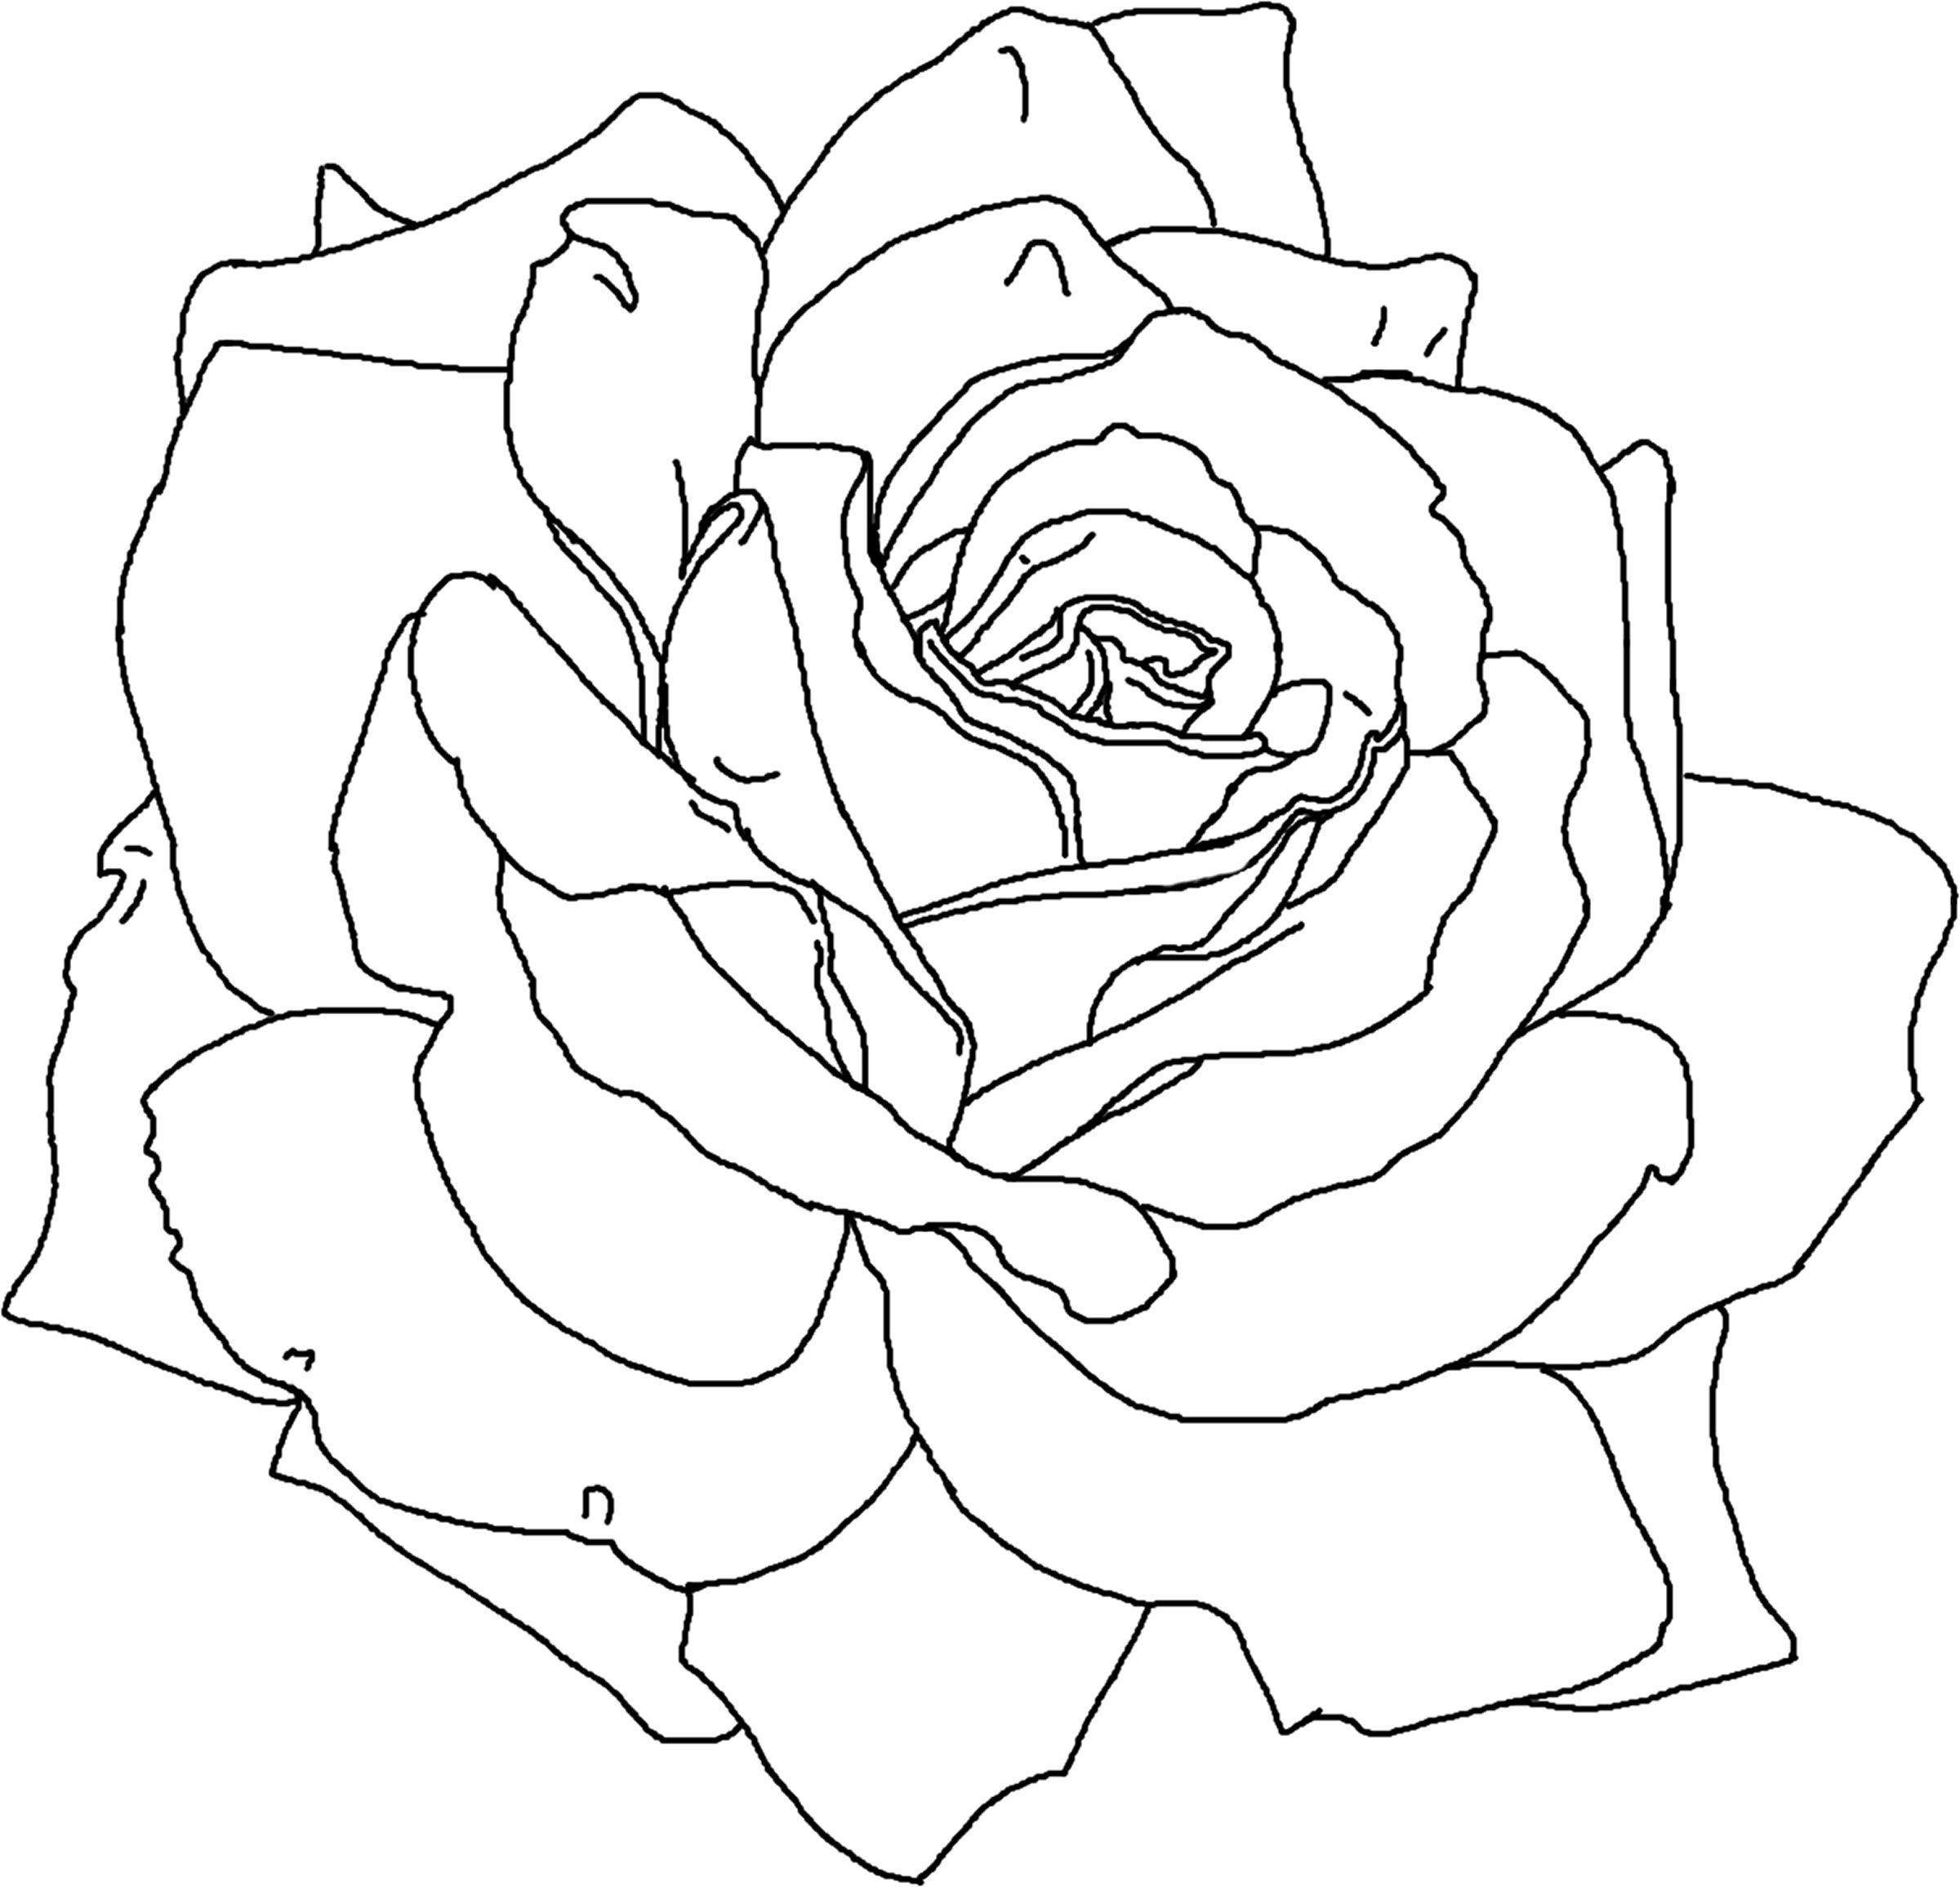 Rose Flower Coloring Page Rose Coloring Pages Printable Flower Coloring Pages Flower Coloring Pages